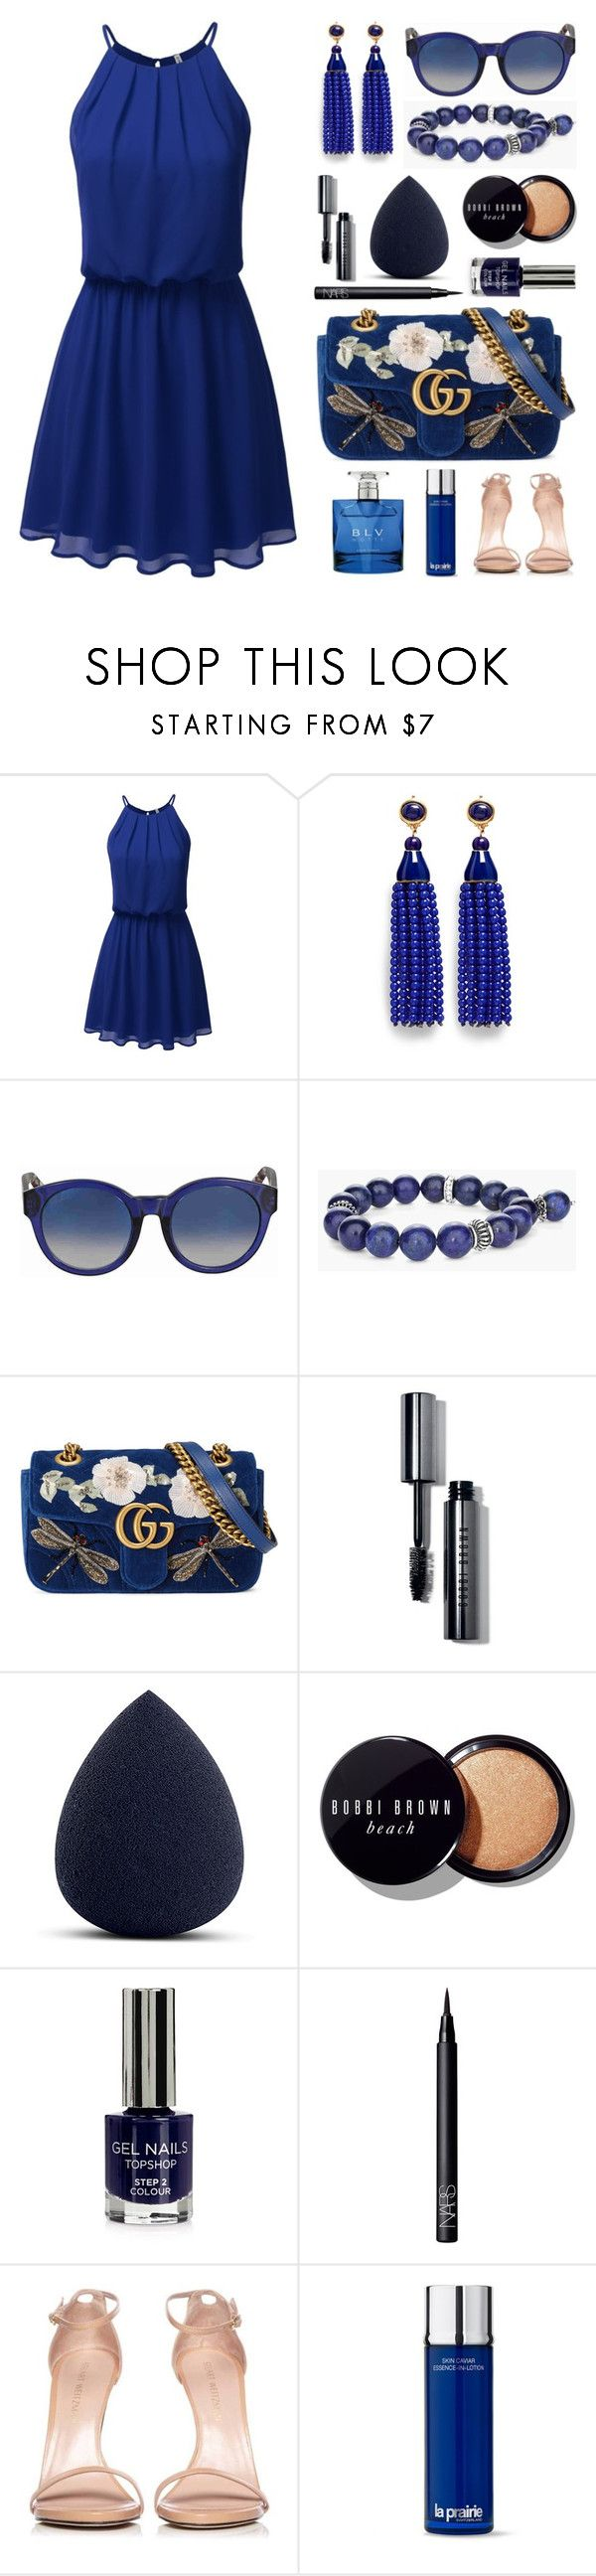 """Rule in Blue"" by wambui ❤ liked on Polyvore featuring Kenneth Jay Lane, Gucci, Chico's, Bobbi Brown Cosmetics, My Makeup Brush Set, Topshop, NARS Cosmetics, Stuart Weitzman, La Prairie and Bulgari"